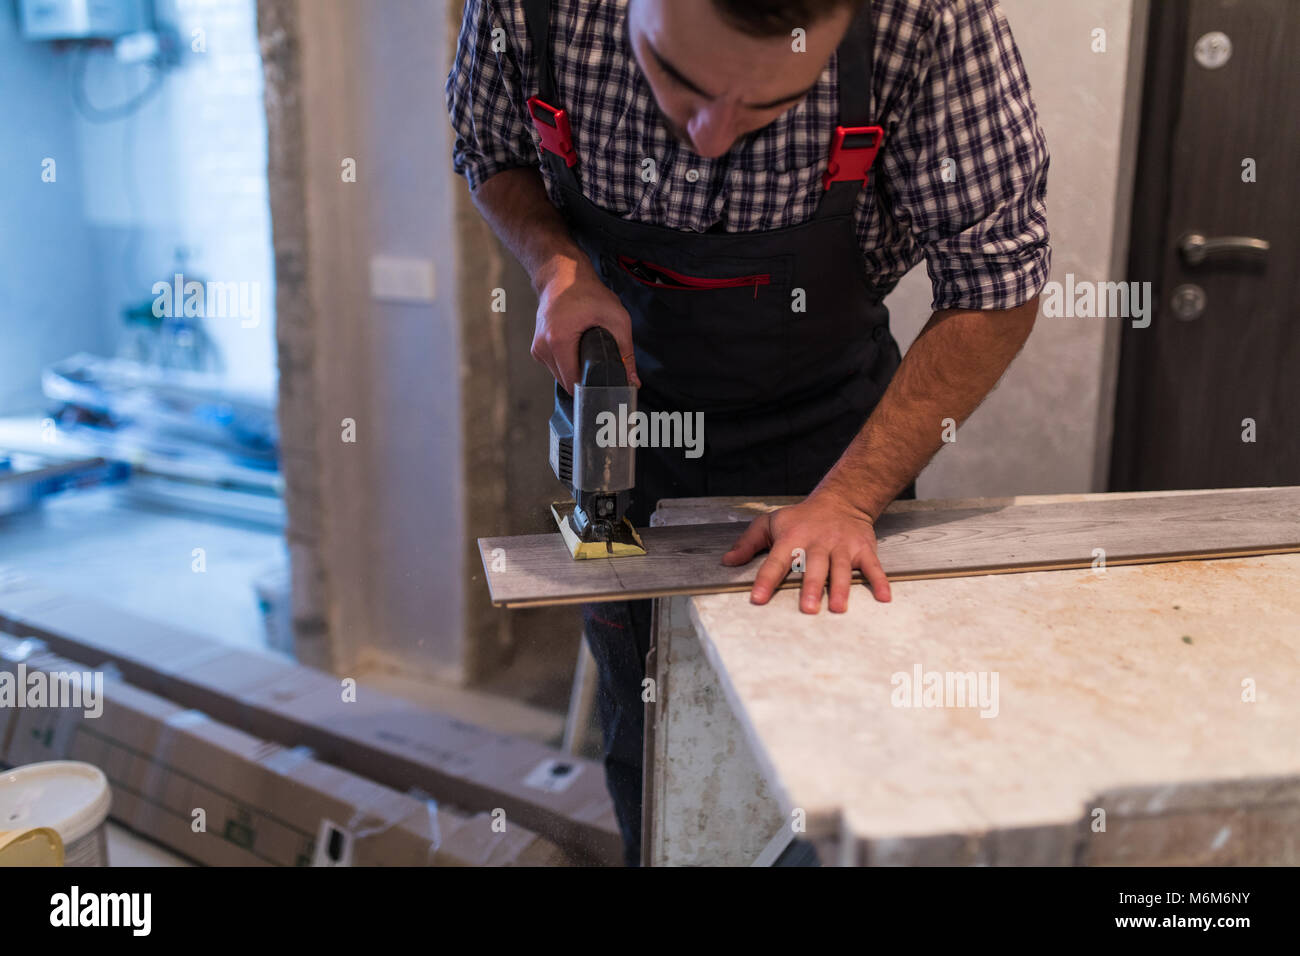 Contractor Cutting laminate flooring lengthwise. Workers Cutting laminate flooring with electric saw. - Stock Image